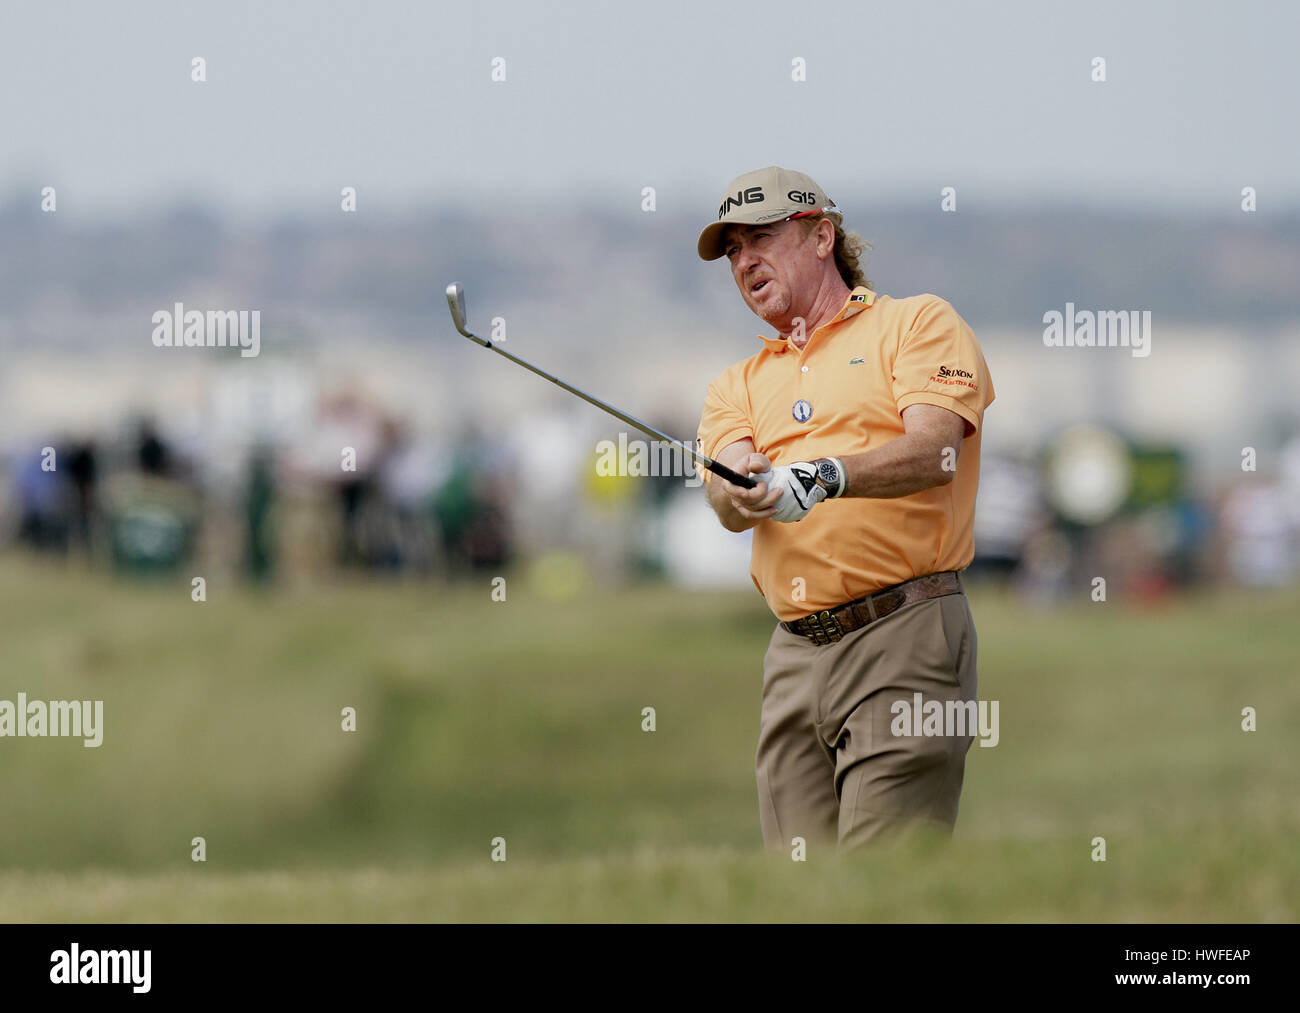 MIGUEL ANGEL JIMENEZ SPAIN SPAIN ROYAL ST.GEORGE'S SANDWICH KENT ENGLAND 15 July 2011 - Stock Image